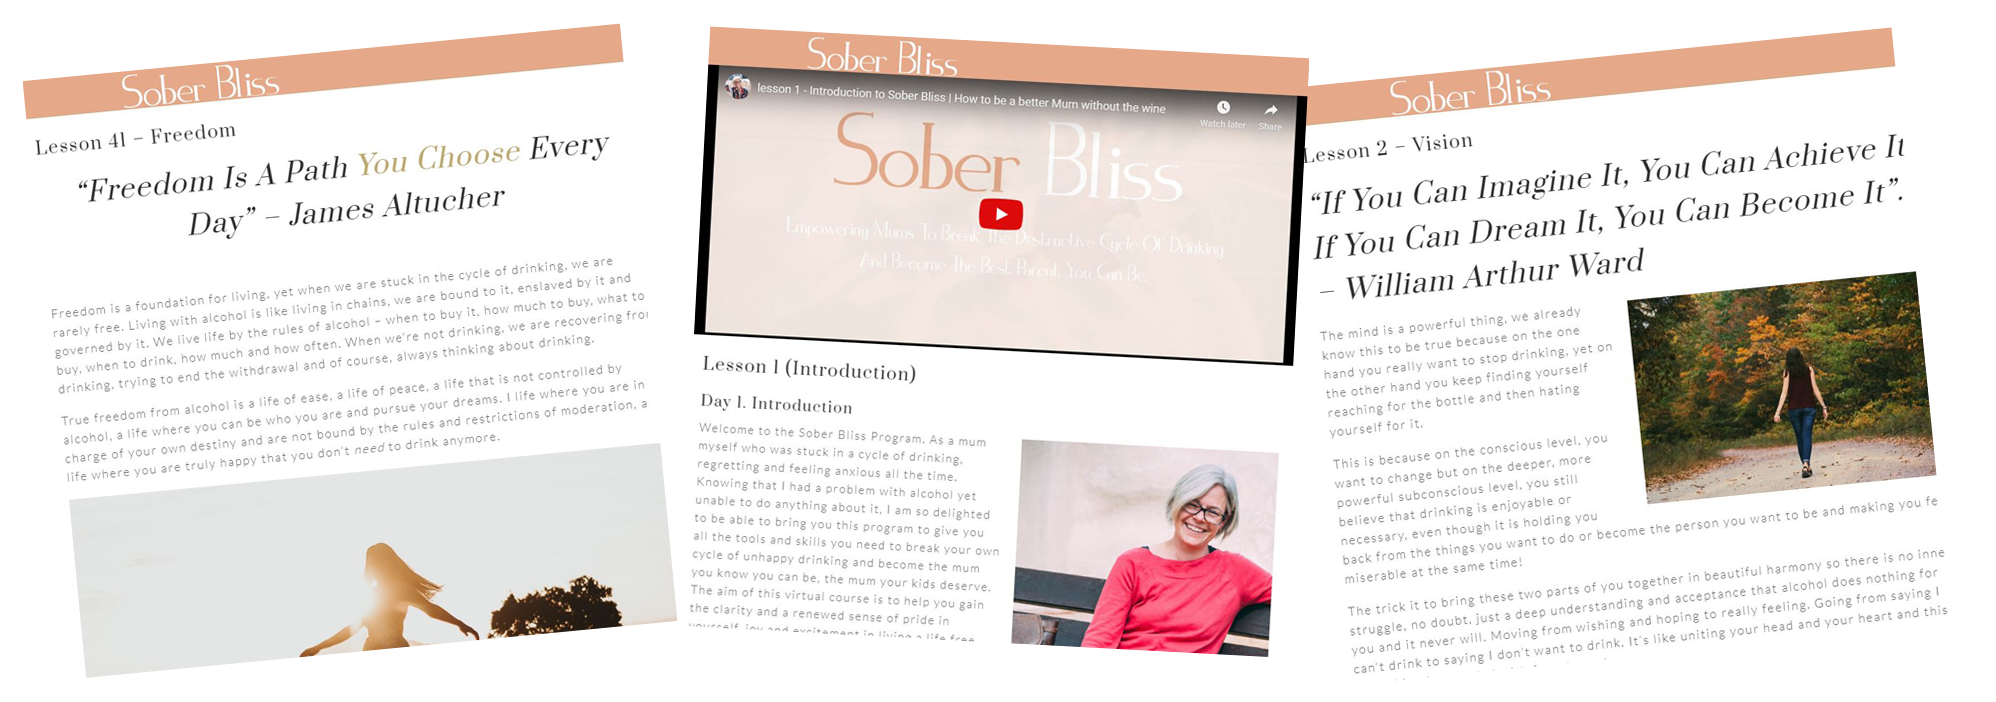 sober bliss pages